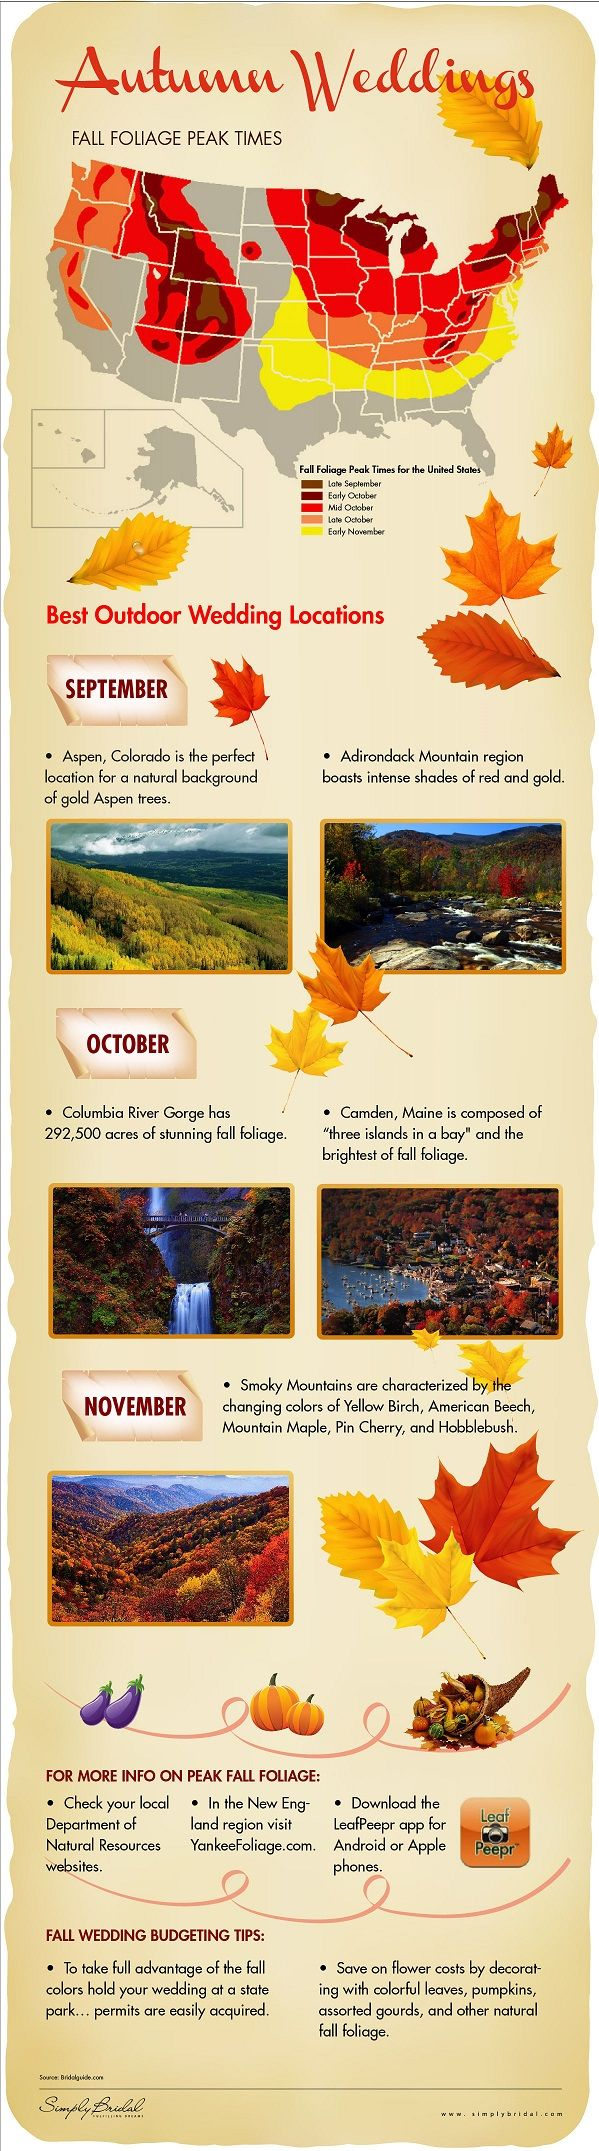 Autumn wedding destinations! We are having our wedding in late October, PREFECT!!!!!